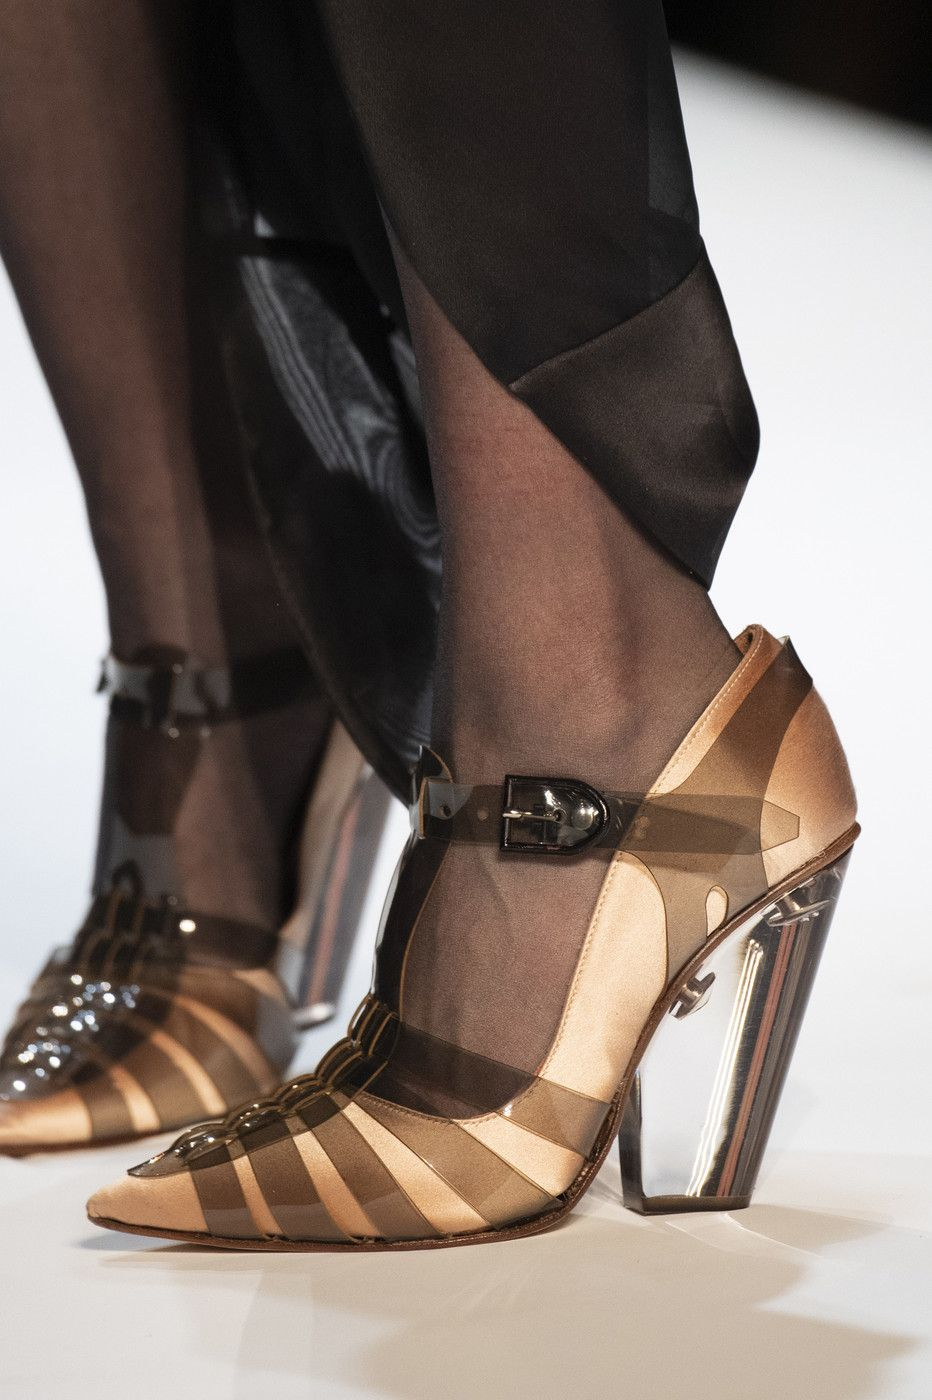 Jean Paul Gaultier at Couture Spring